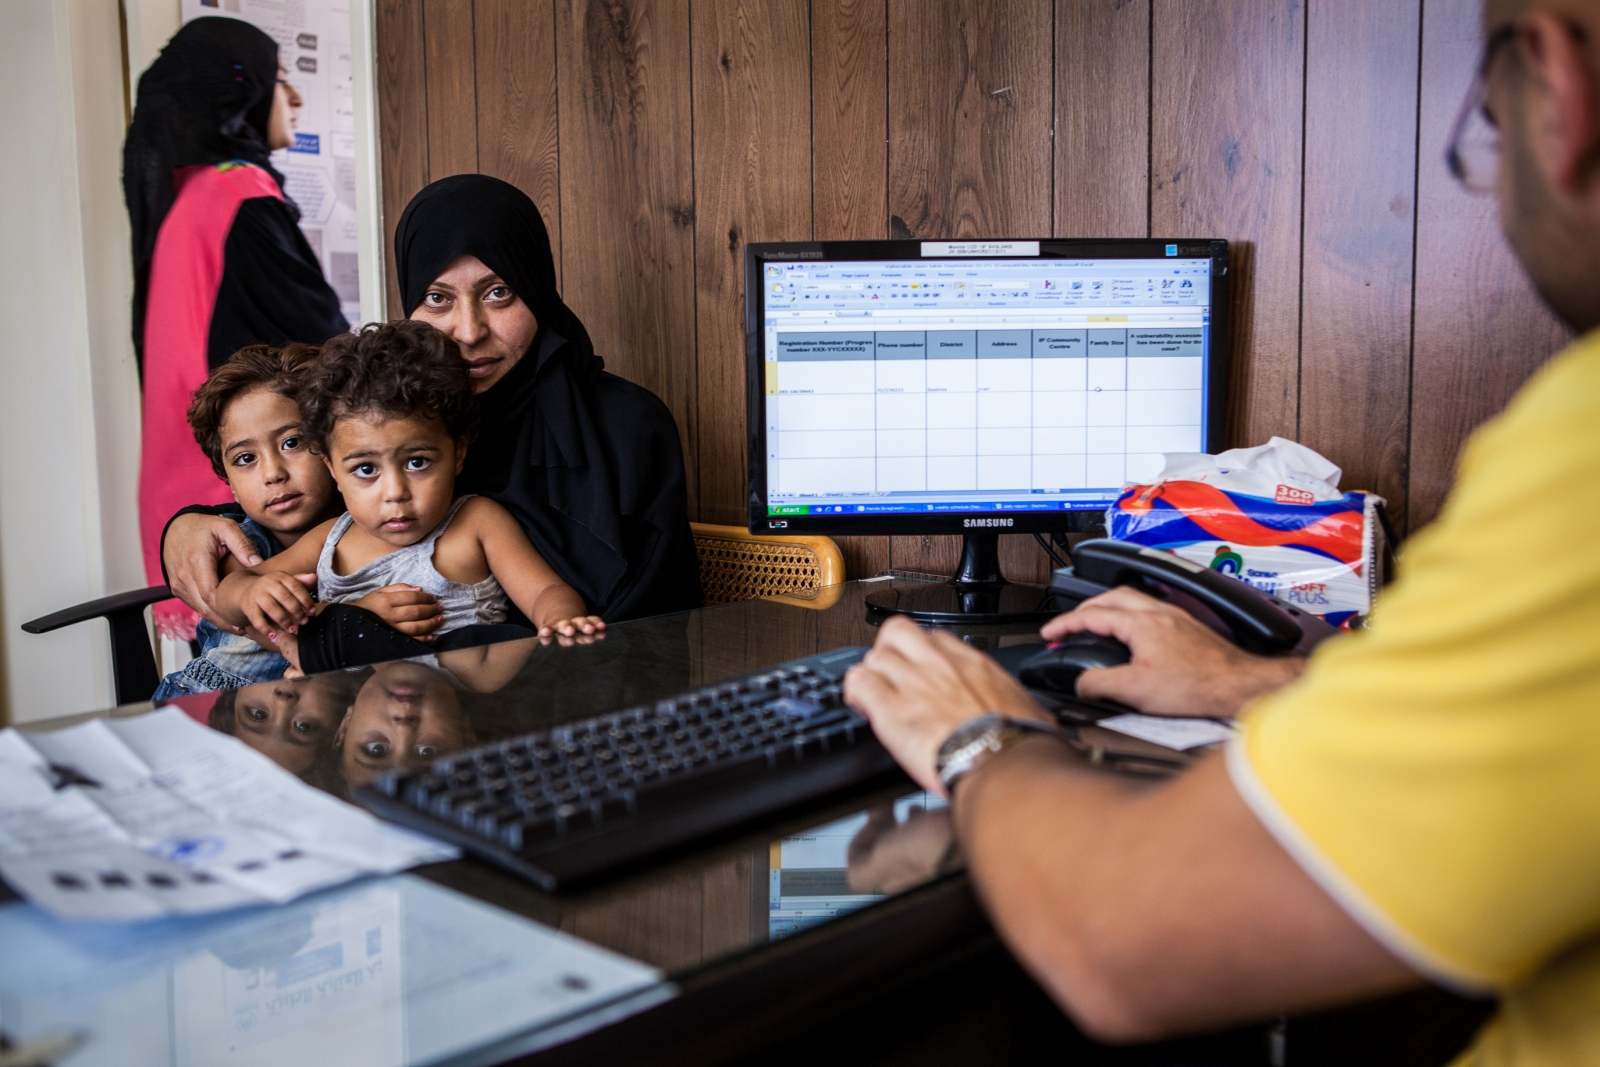 Beirut, LEBANON, September 22, 2014: Alissa Amad Mohammad Ali (35) and her children, Rona (4), and Amal (2) are receiving an vulnerability assessment at Makhzouni Foundation who collaborated with UNHCR. Alissa has six children and is a single parent since her husband went missing in Syria two years ago.